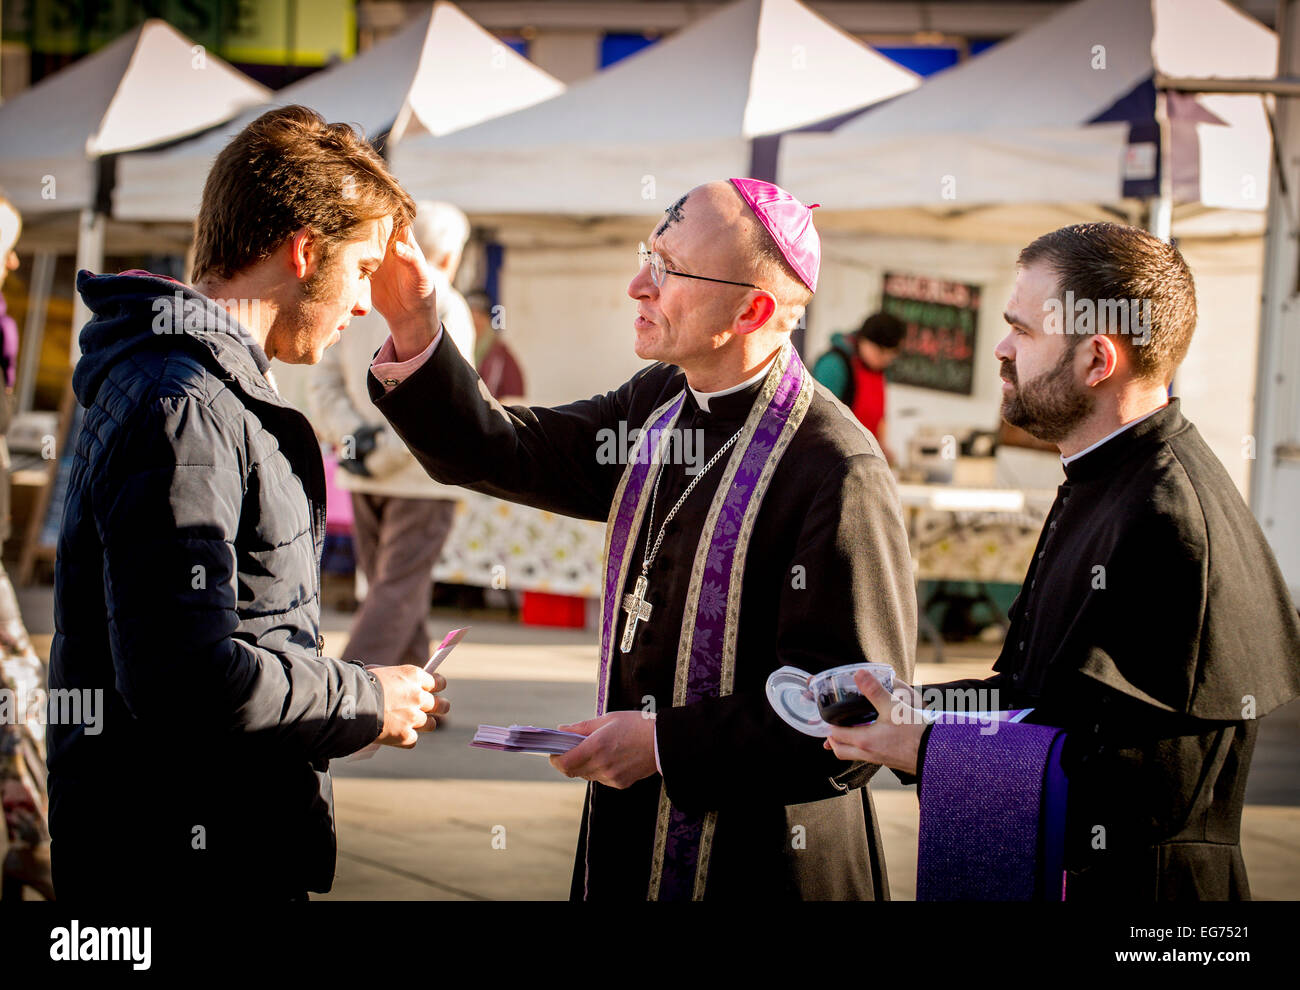 Brighton, UK. 18th February, 2015. The Bishop of Chichester and a team from the Diocese of Chichester were in Brighton - Stock Image